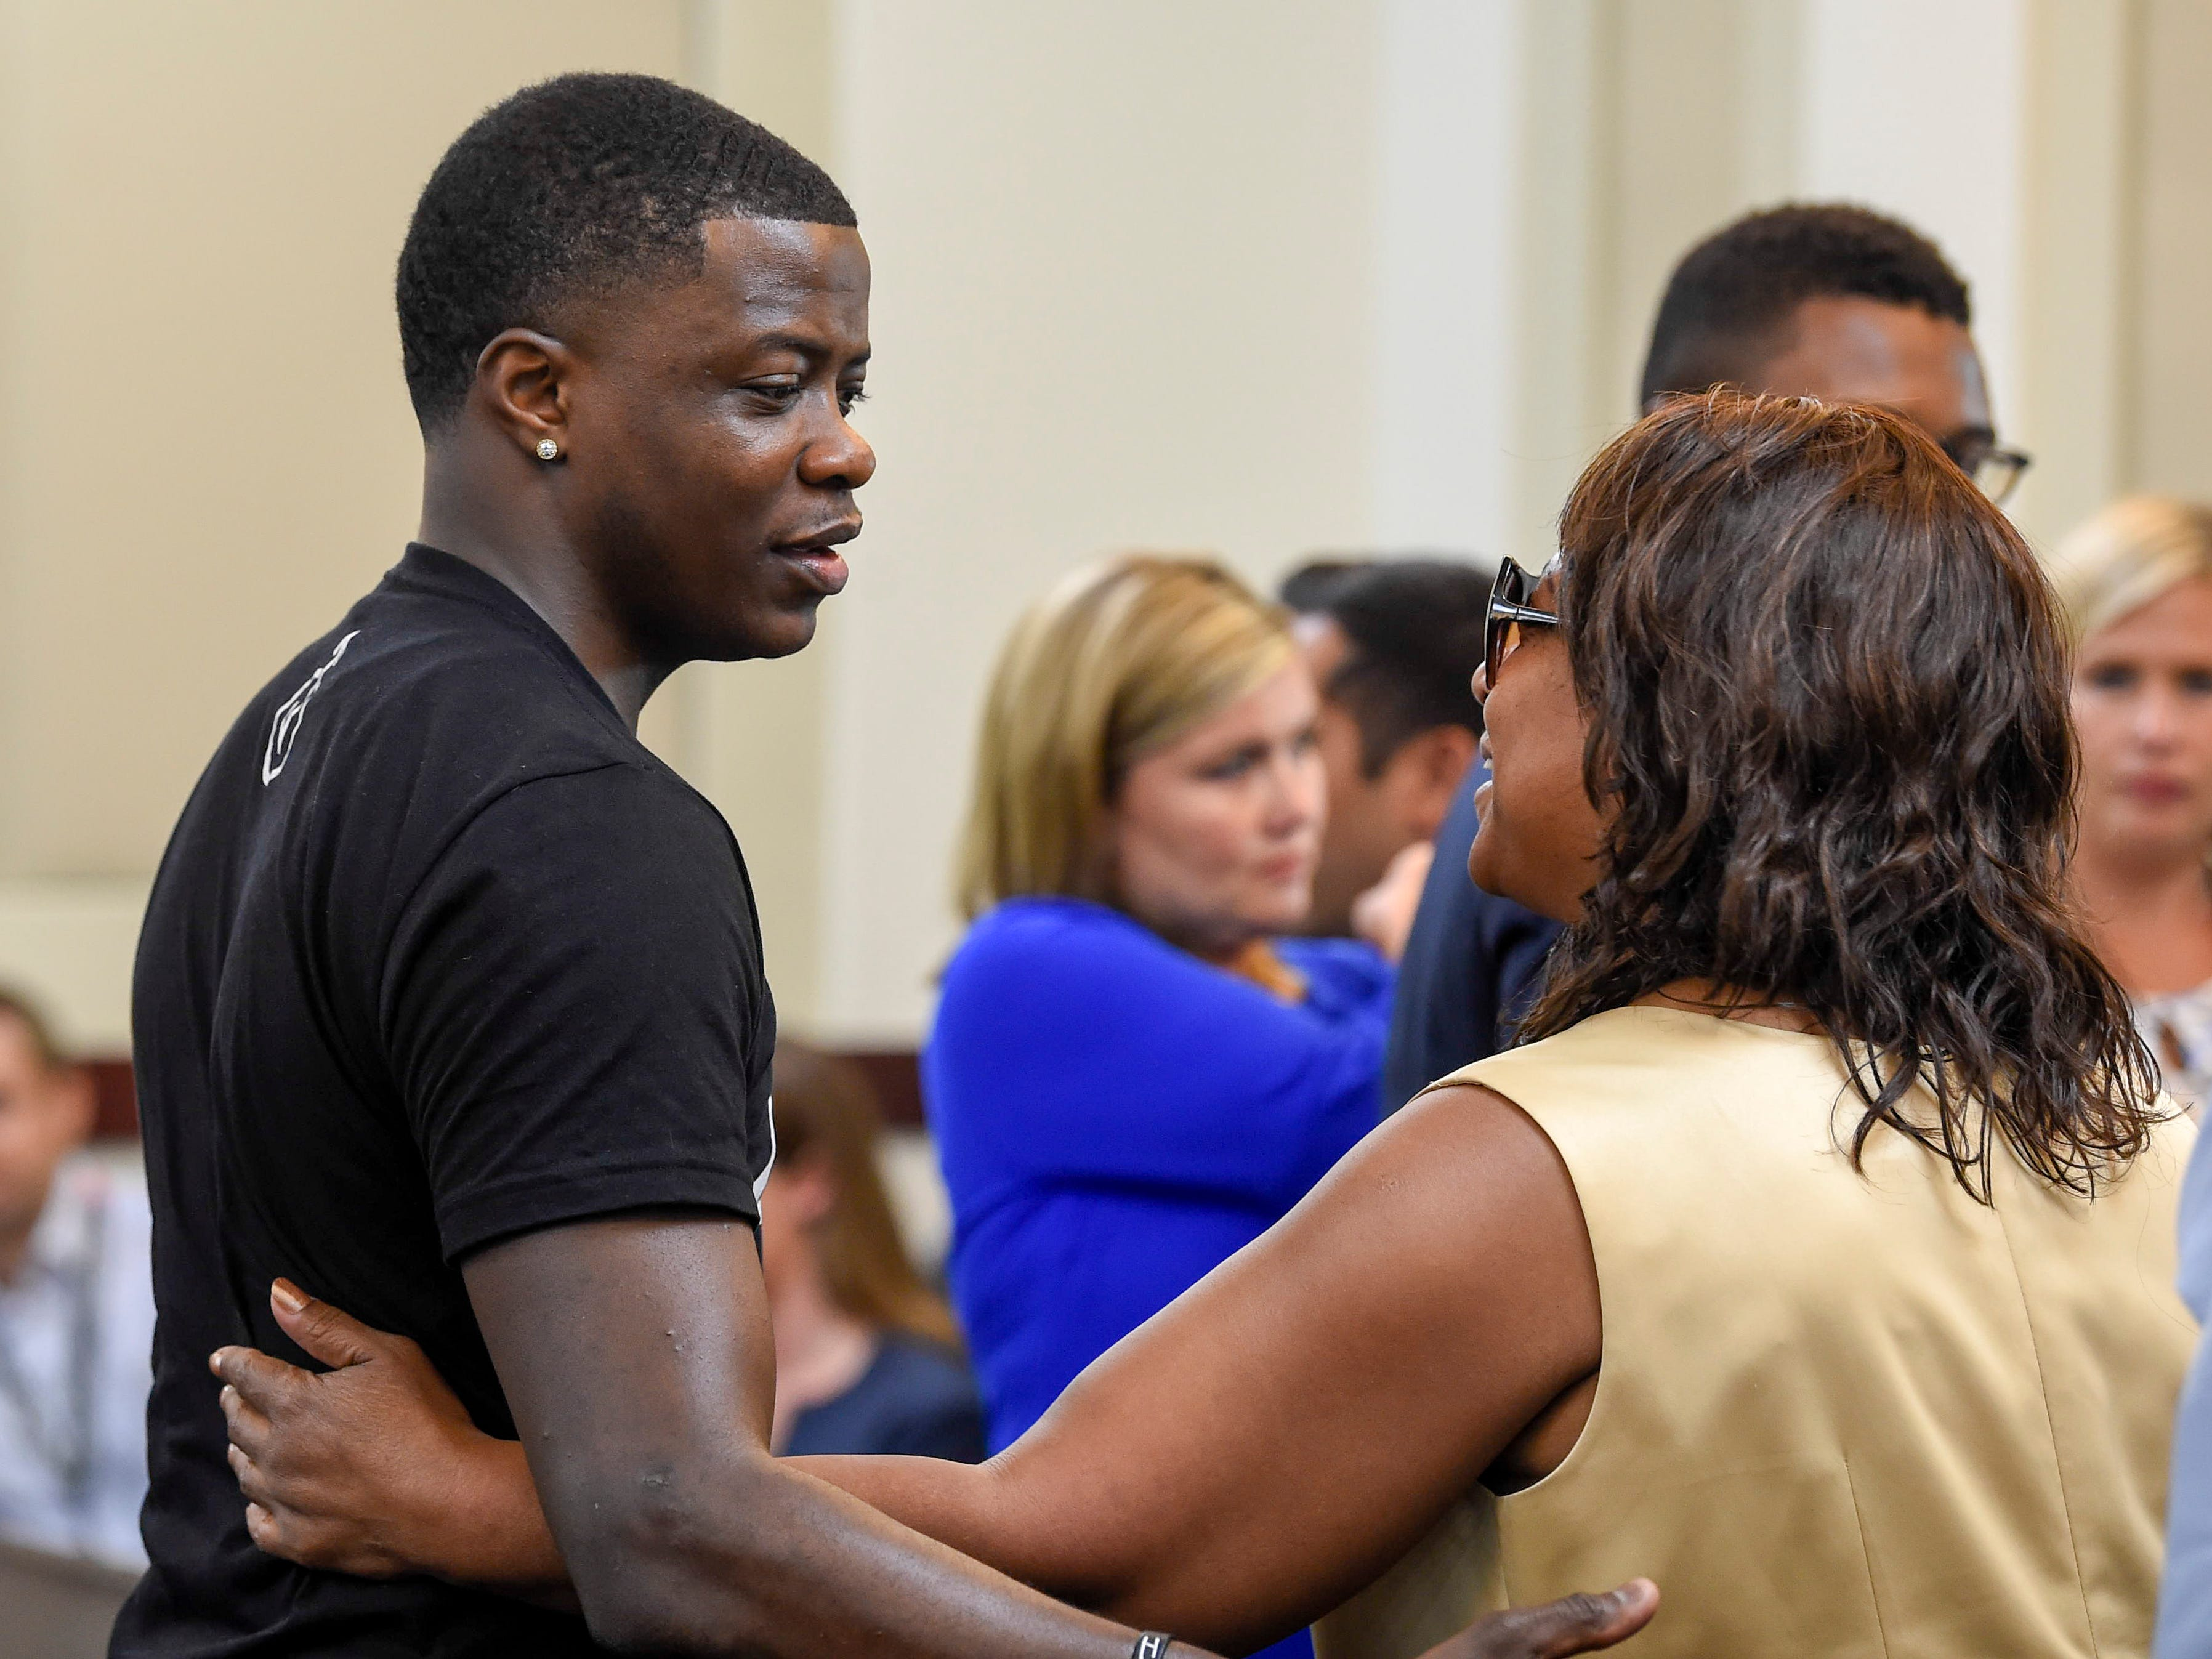 James Shaw Jr. greets Waffle House shooting victims' family members during the hearing on the mental health of Travis Reinking in criminal court Wednesday, Aug. 22, 2018, in Nashville, Tenn.